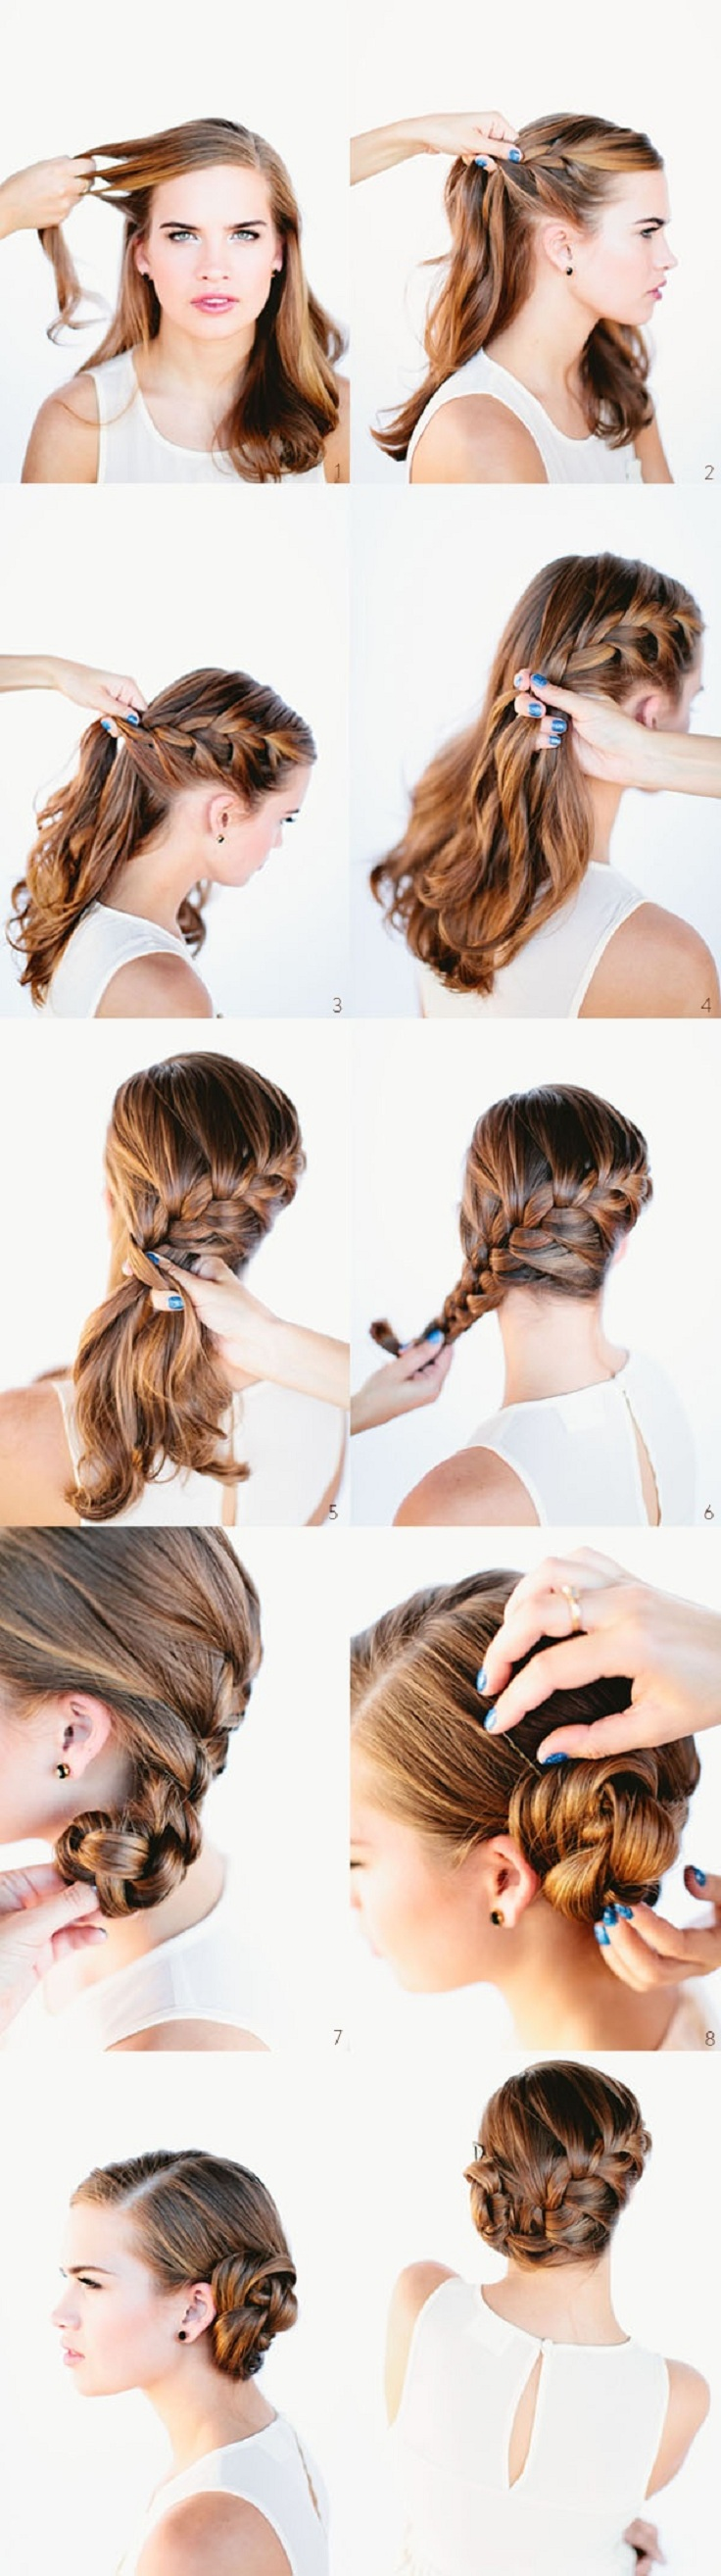 Peachy 10 Braided Hairstyle Tutorials Crafthubs Short Hairstyles For Black Women Fulllsitofus